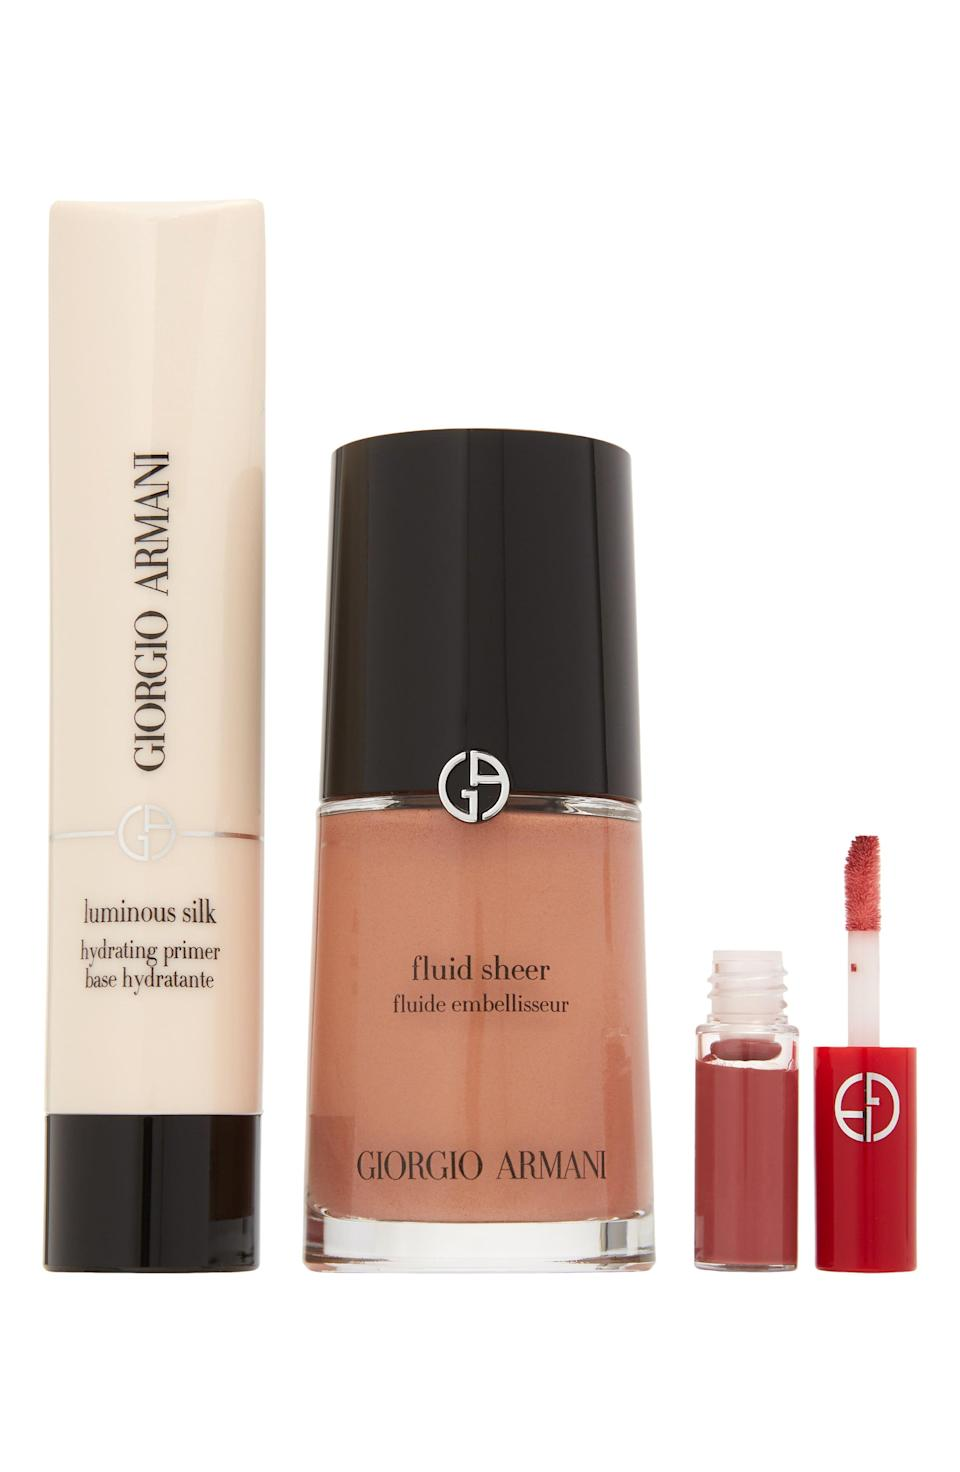 """<p><strong>GIORGIO ARMANI</strong></p><p>nordstrom.com</p><p><strong>$75.00</strong></p><p><a href=""""https://go.redirectingat.com?id=74968X1596630&url=https%3A%2F%2Fwww.nordstrom.com%2Fs%2Fgiorgio-armani-glow-set-112-value%2F5605639&sref=https%3A%2F%2Fwww.harpersbazaar.com%2Fbeauty%2Fg33481900%2Fnordstrom-anniversary-sale-2020-best-beauty-makeup-deals%2F"""" rel=""""nofollow noopener"""" target=""""_blank"""" data-ylk=""""slk:SHOP NOW"""" class=""""link rapid-noclick-resp"""">SHOP NOW</a></p><p><strong>Sale: $75</strong></p><p>Value: $112</p><p>This fan-favorite fluid highlighter creates a dewy, lit-from-within glow that makes skin look distinguishably more awake. If you've never tried it before and your skin tone is shade 2, you are in luck with this steal of a set that also comes with a blurring primer and a Lip Maestro liquid lipstick in a perfect day-to-night shade of Casual Pink. </p>"""